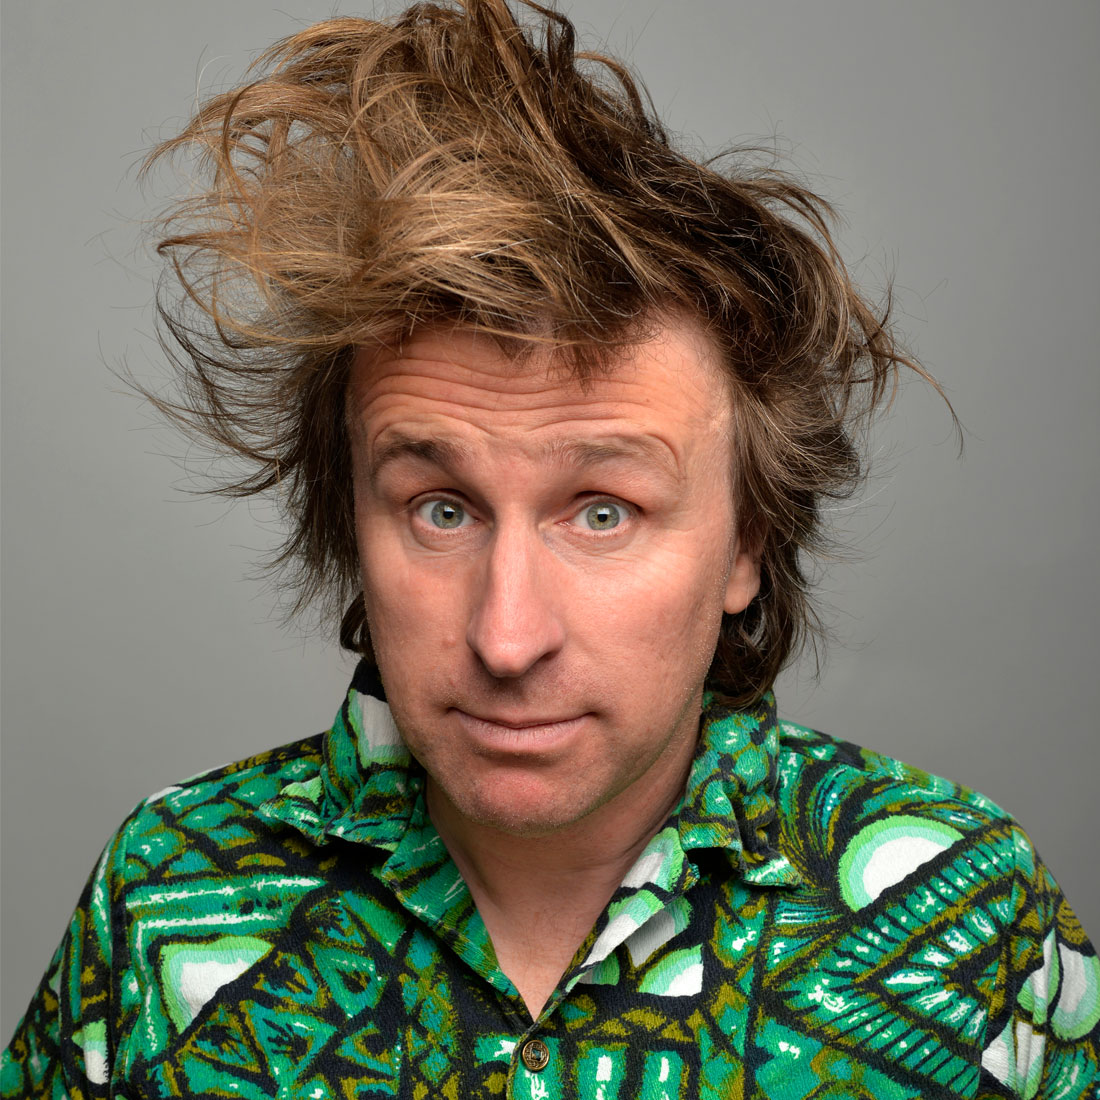 Milton Jones Is Out There Royal amp Derngate : Milton Jones And iPhone Desk <strong>Dock Organizer</strong> from www.royalandderngate.co.uk size 1100 x 1100 jpeg 295kB